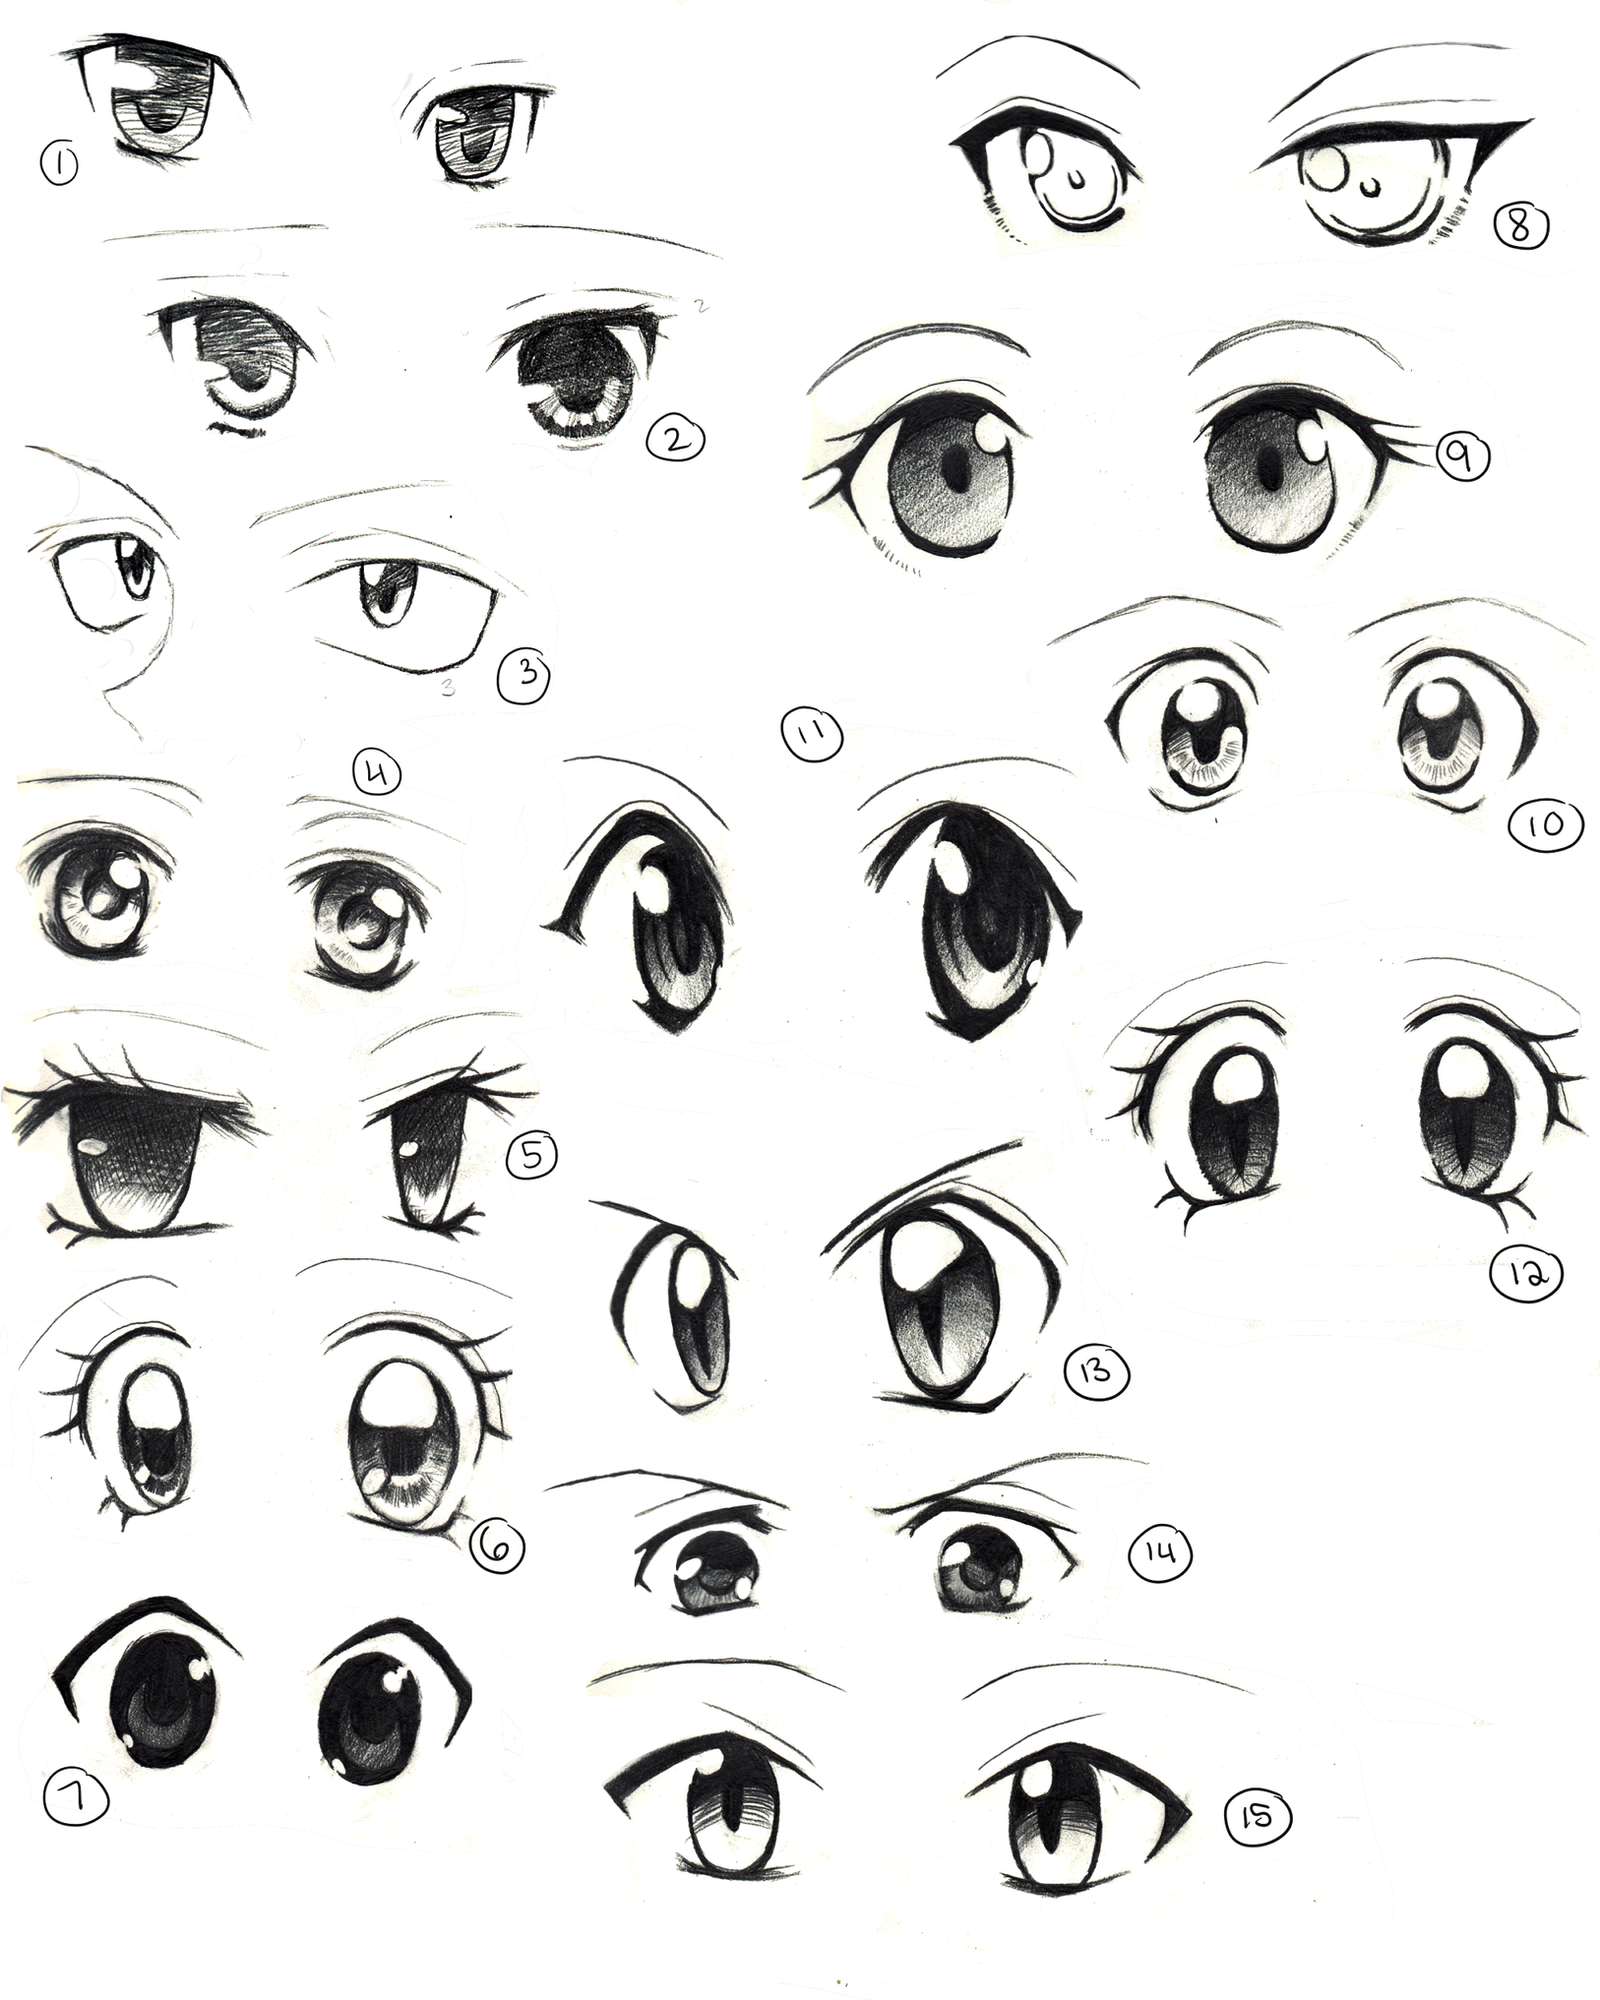 This is a photo of Peaceful Cute Anime Eyes Drawing